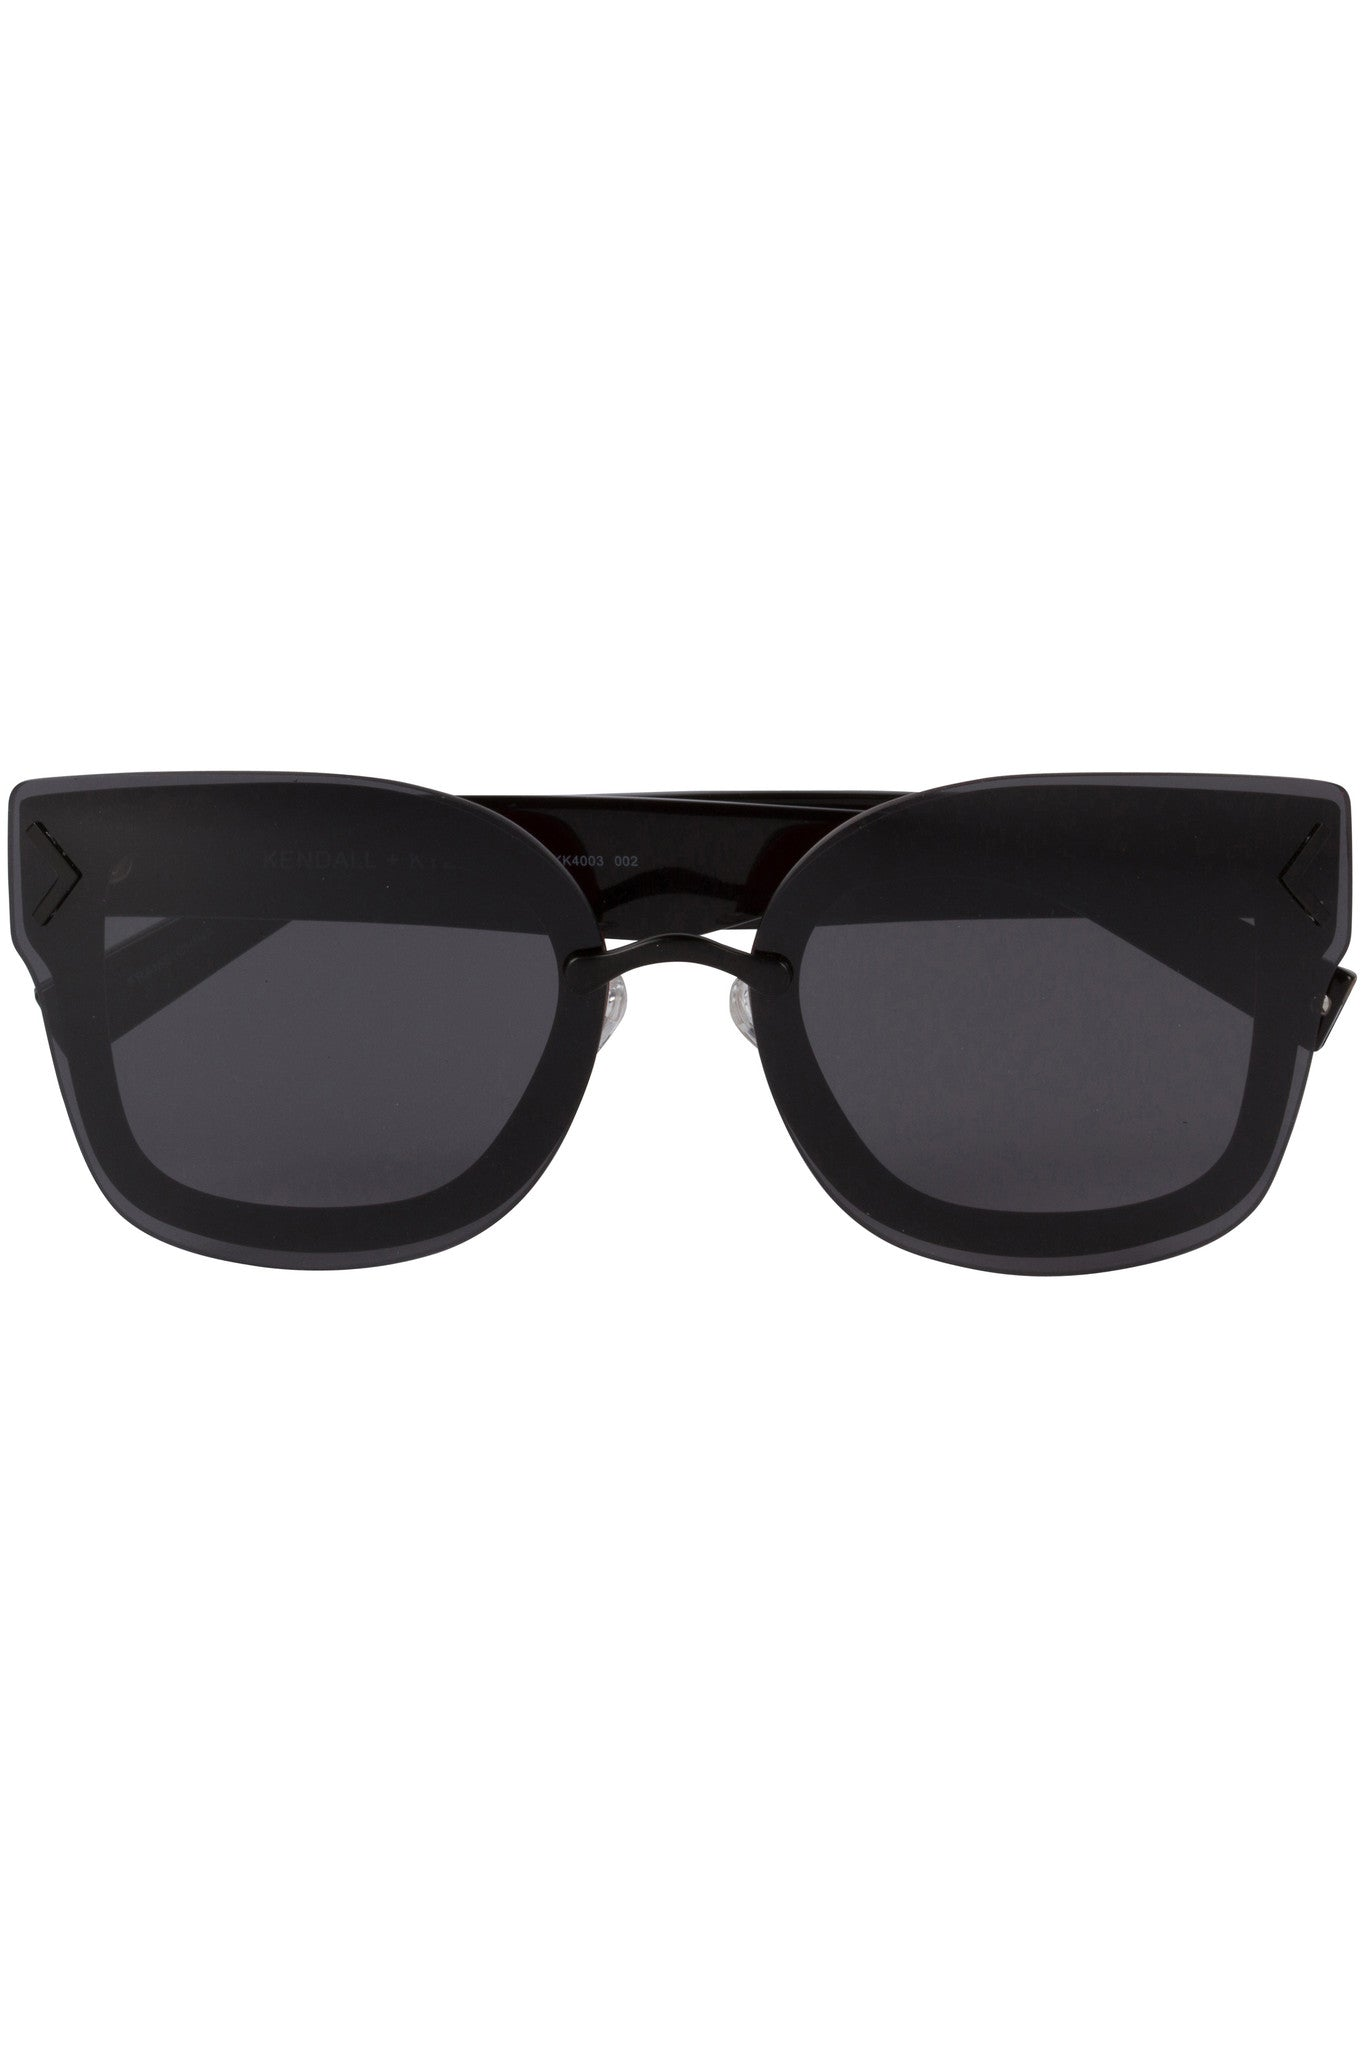 PRISCILLA BLACK ACETATE AND SMOKE-TONE SUNGLASSES EYEWEAR by KENDALL + KYLIE